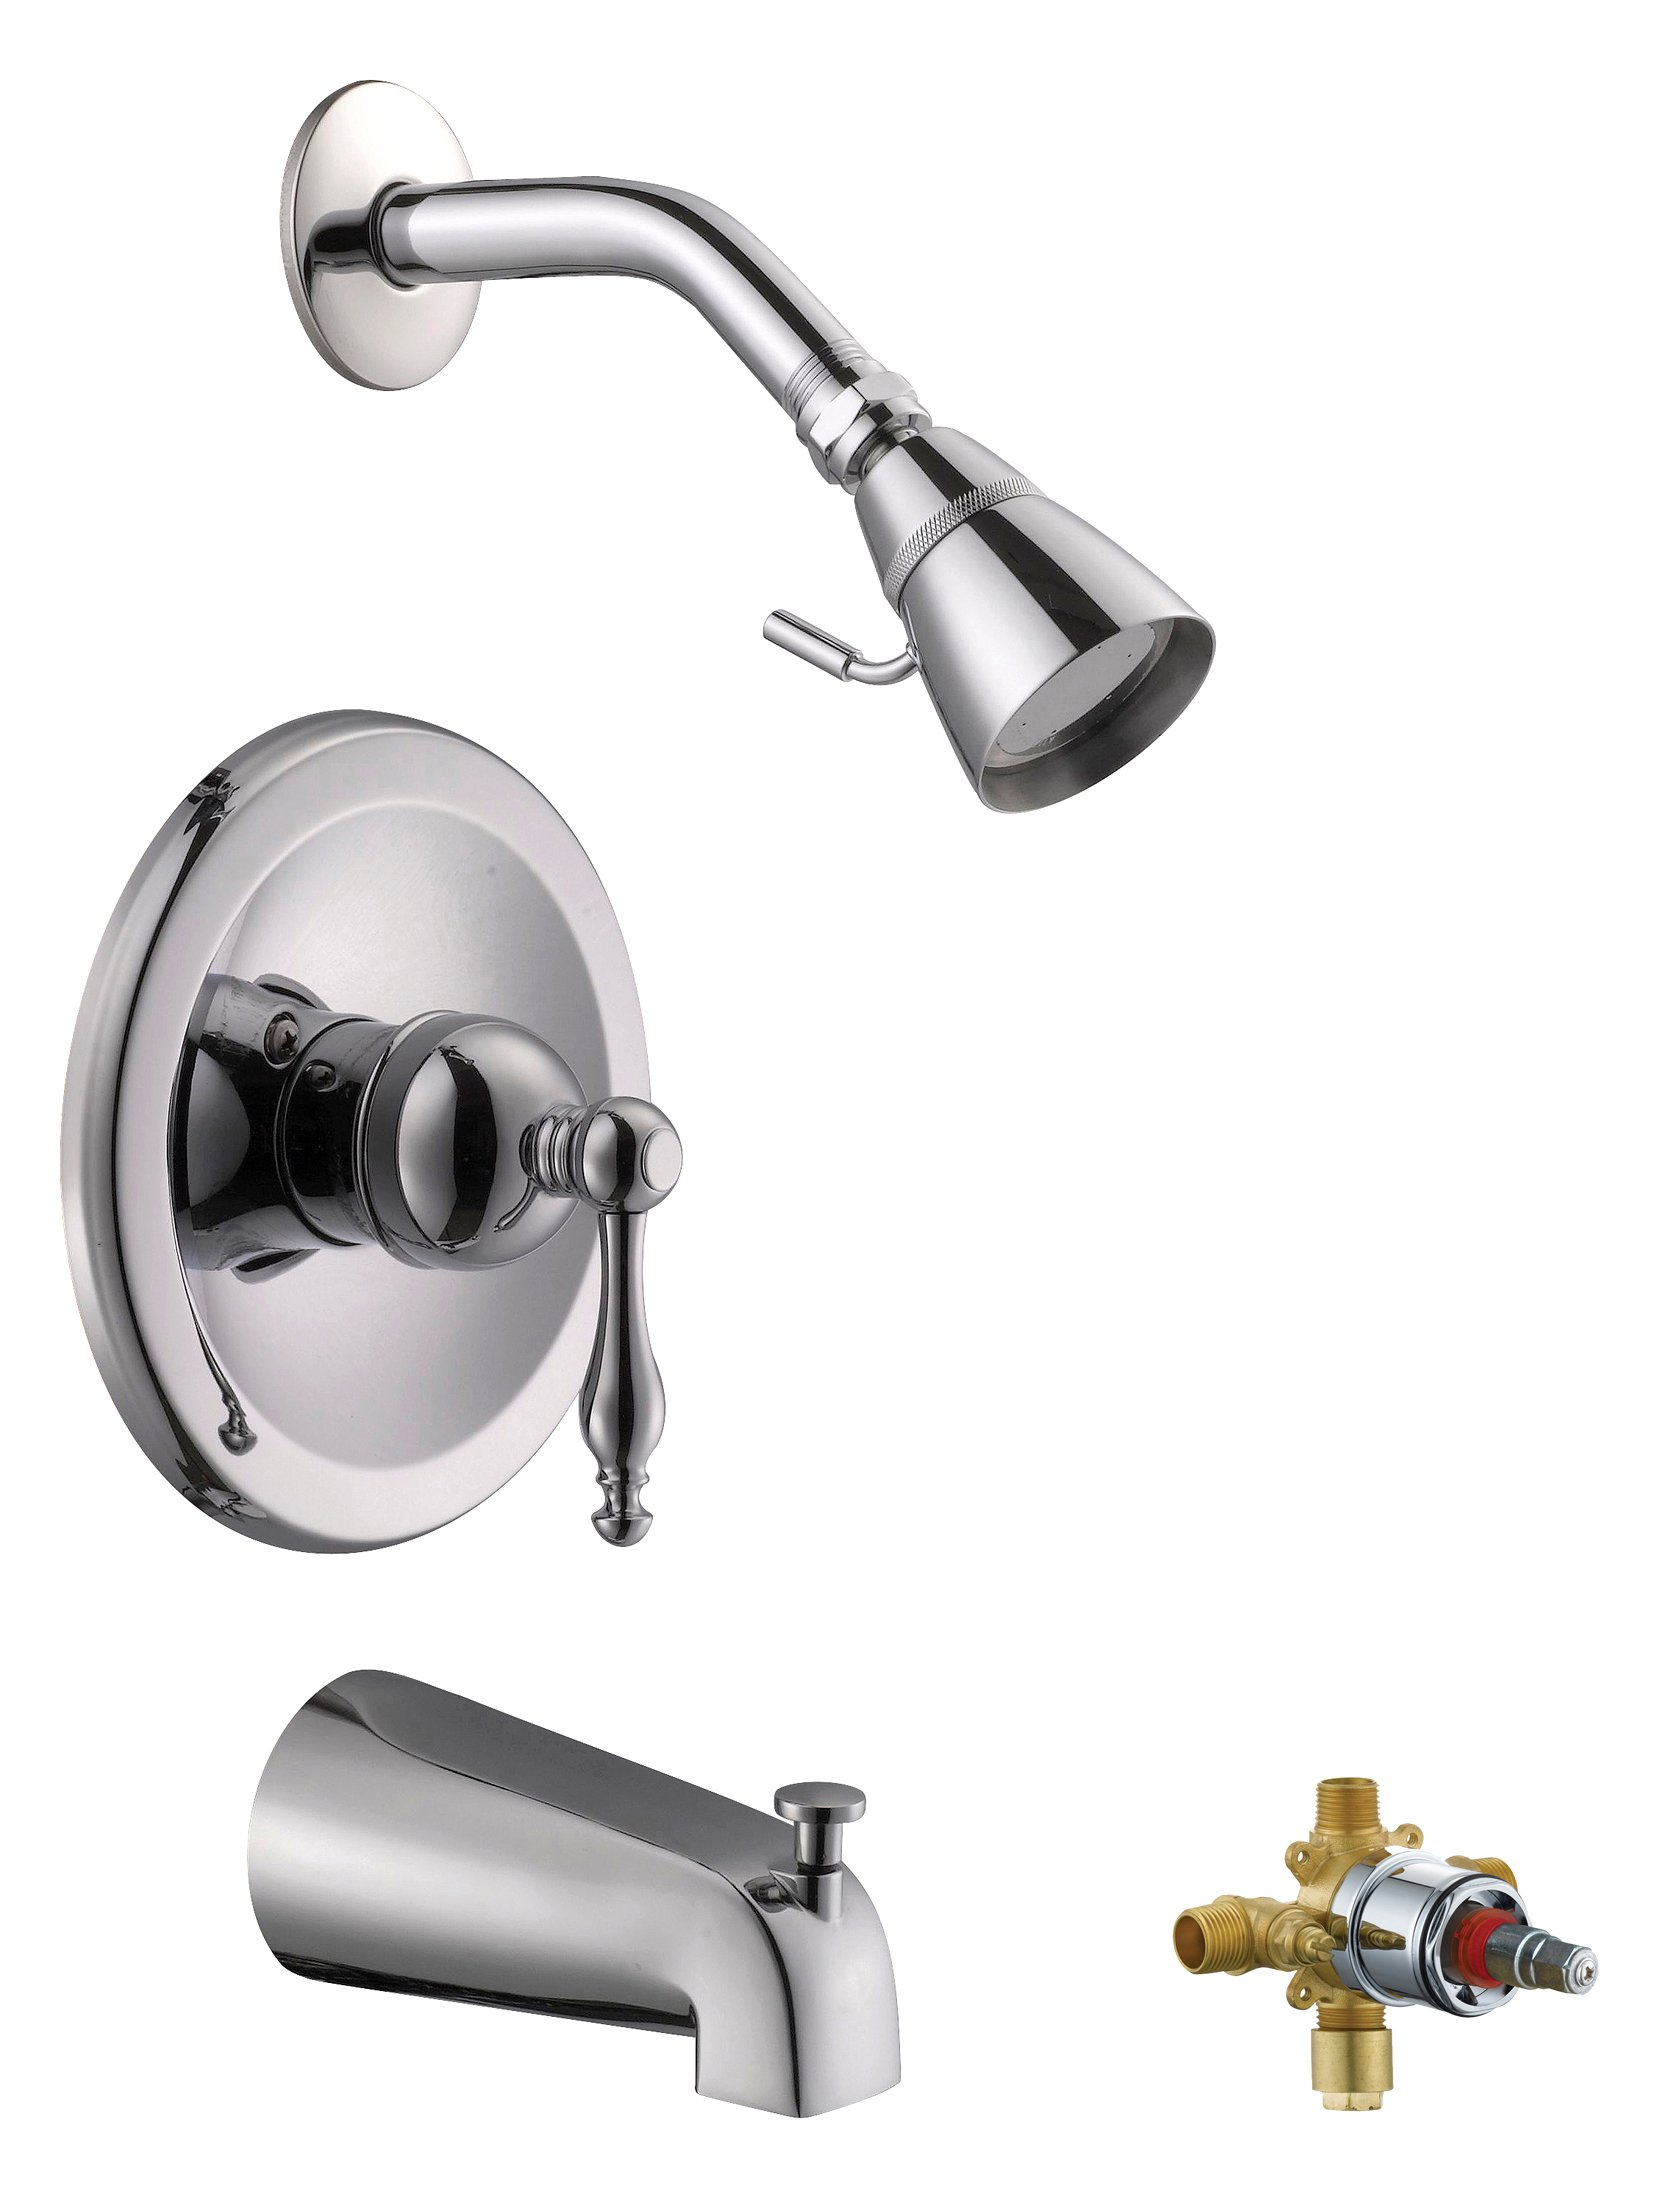 Design House 546036 Saratoga T & S Faucet, Polished Chrome, Includes Complete Installation Kit with Valve